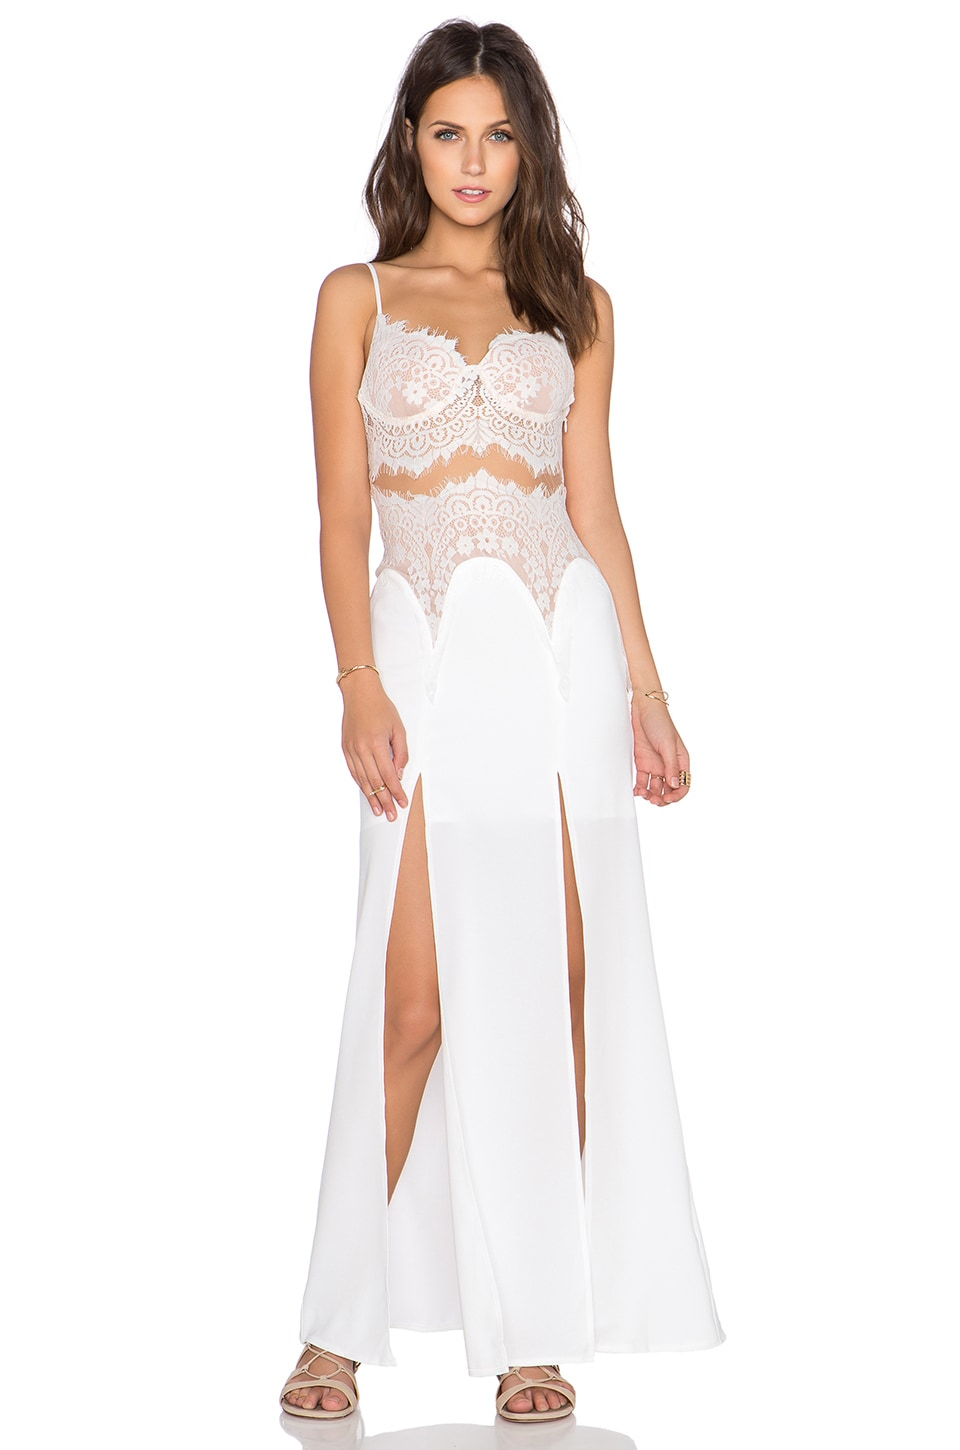 tiger Mist First Class Laxi Maxi Dress in White